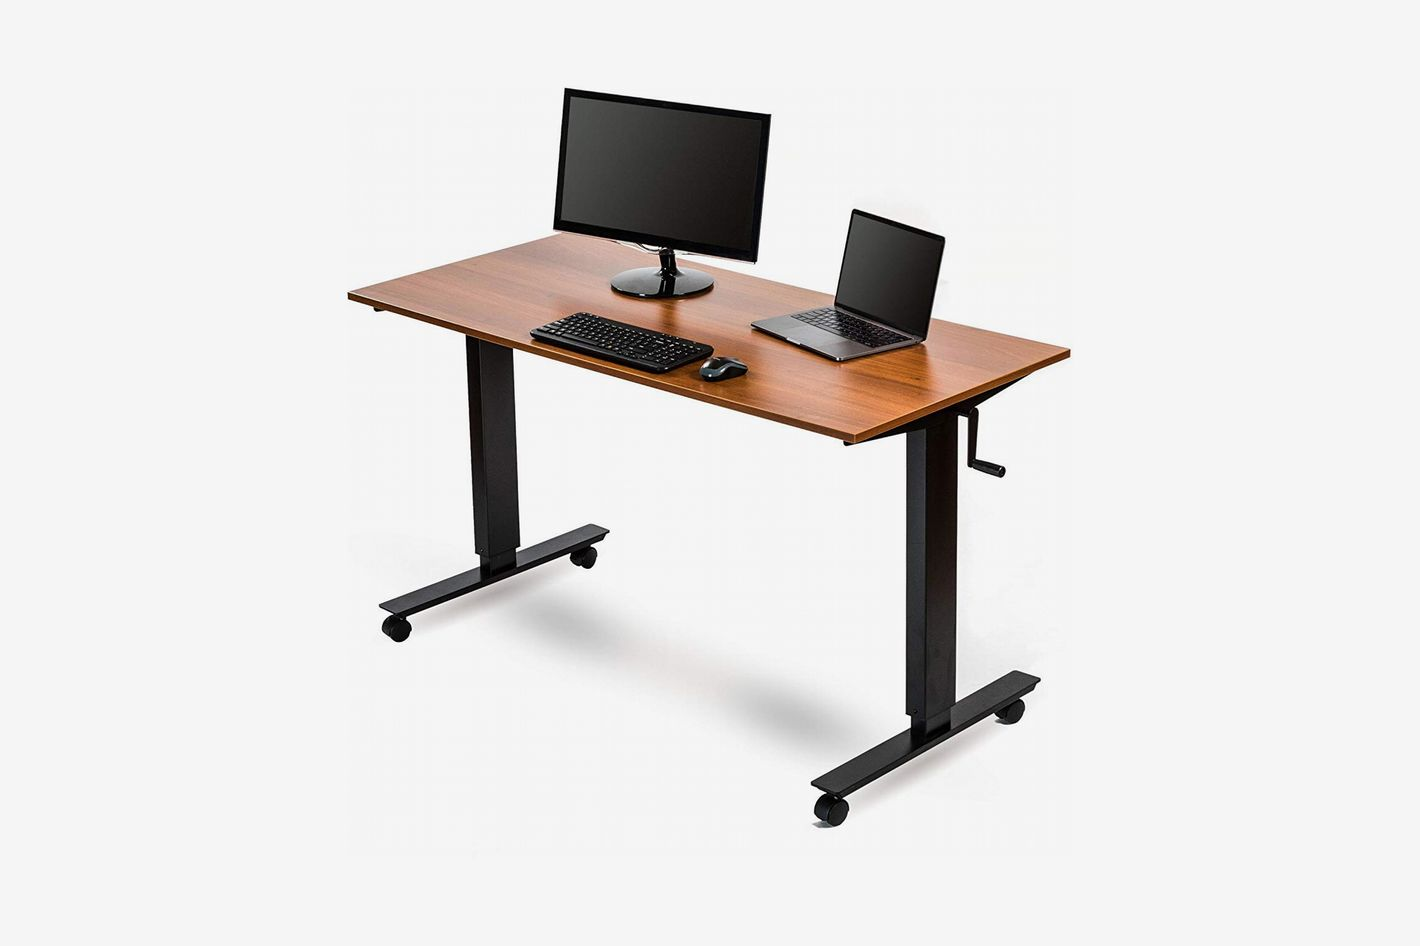 Crank Sit Stand Desk In Many Styles Business & Industrial Office Furniture